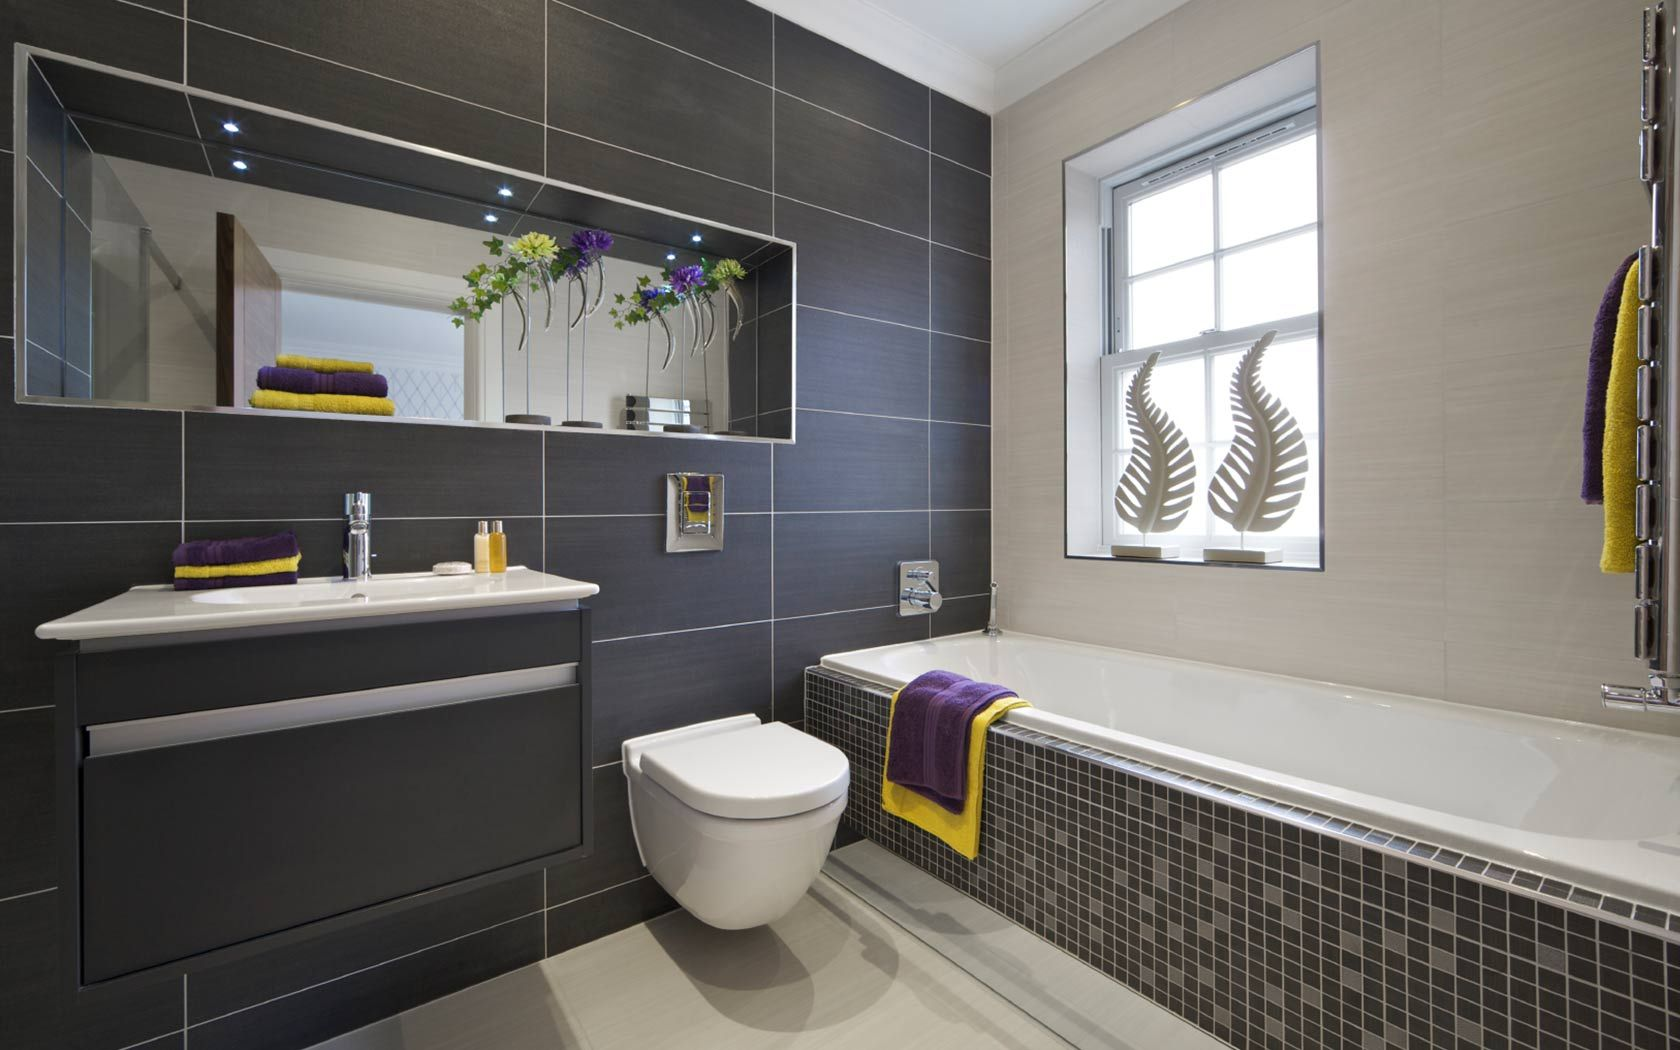 Purple and brown bathroom ideas - Get Inspired With These Gray Bathroom Decorating Ideas Gray And White Bathroom Ideas Grey Bathrooms Decorating